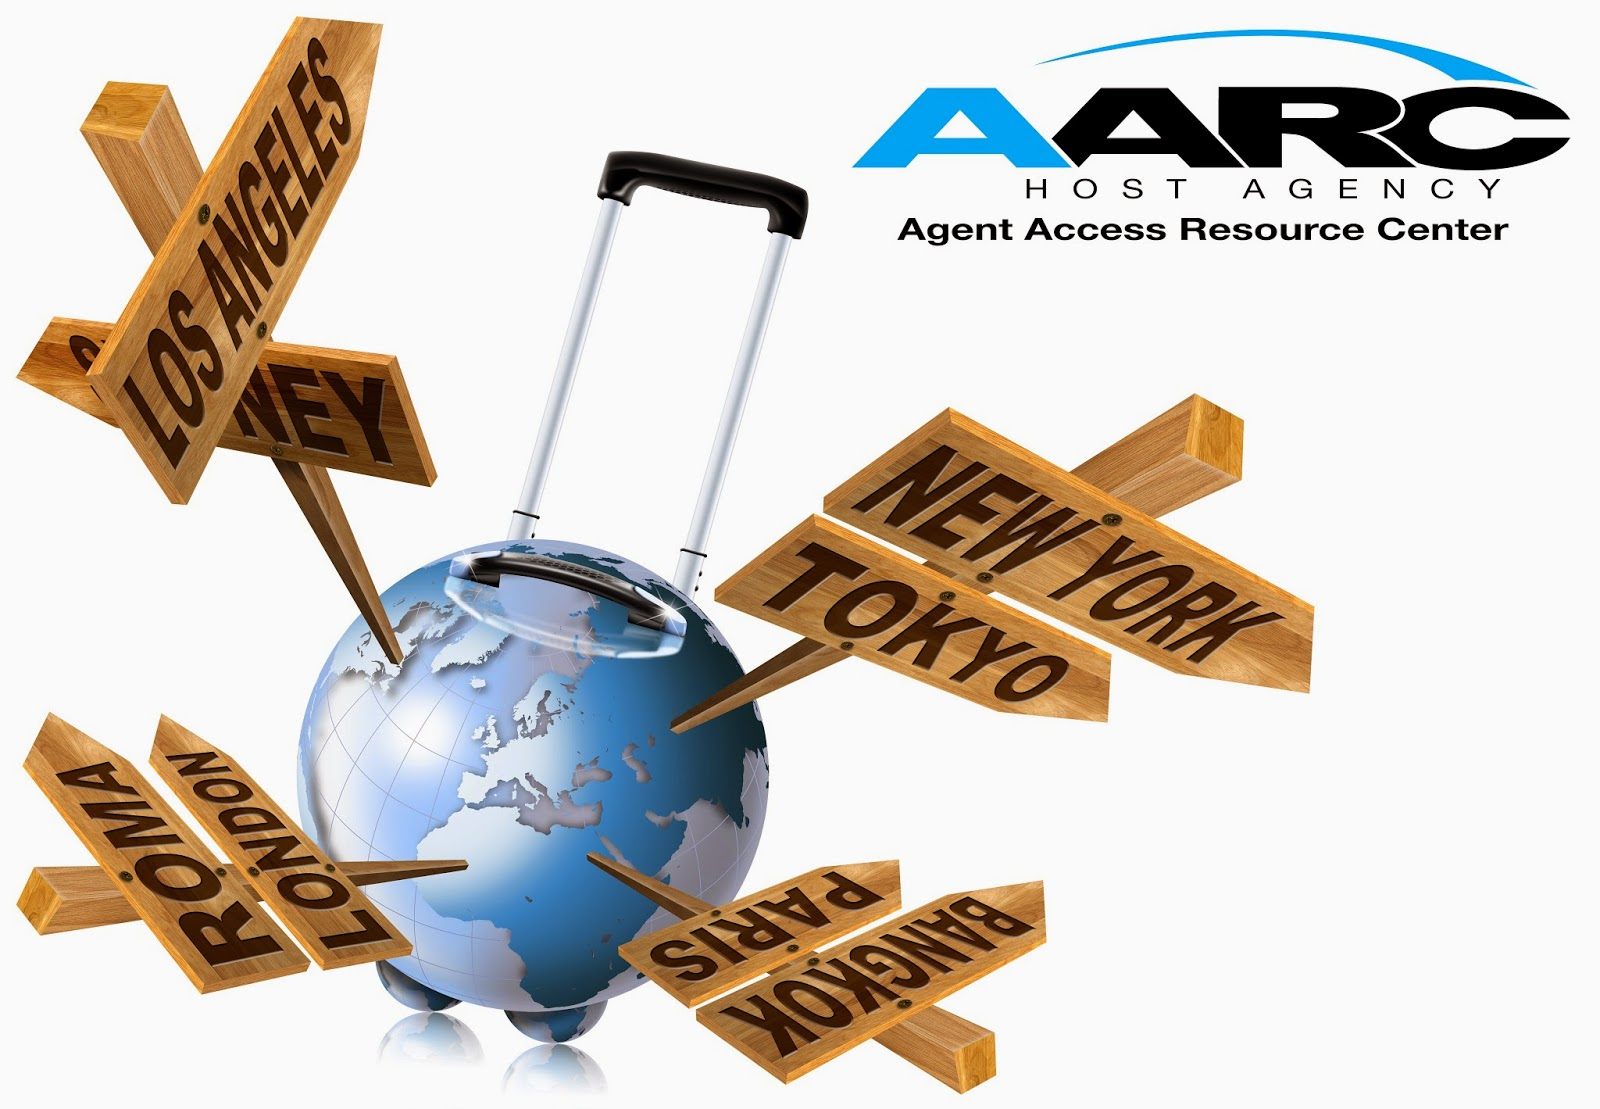 Home Based Travel Agent News: The Perks of Booking Travel